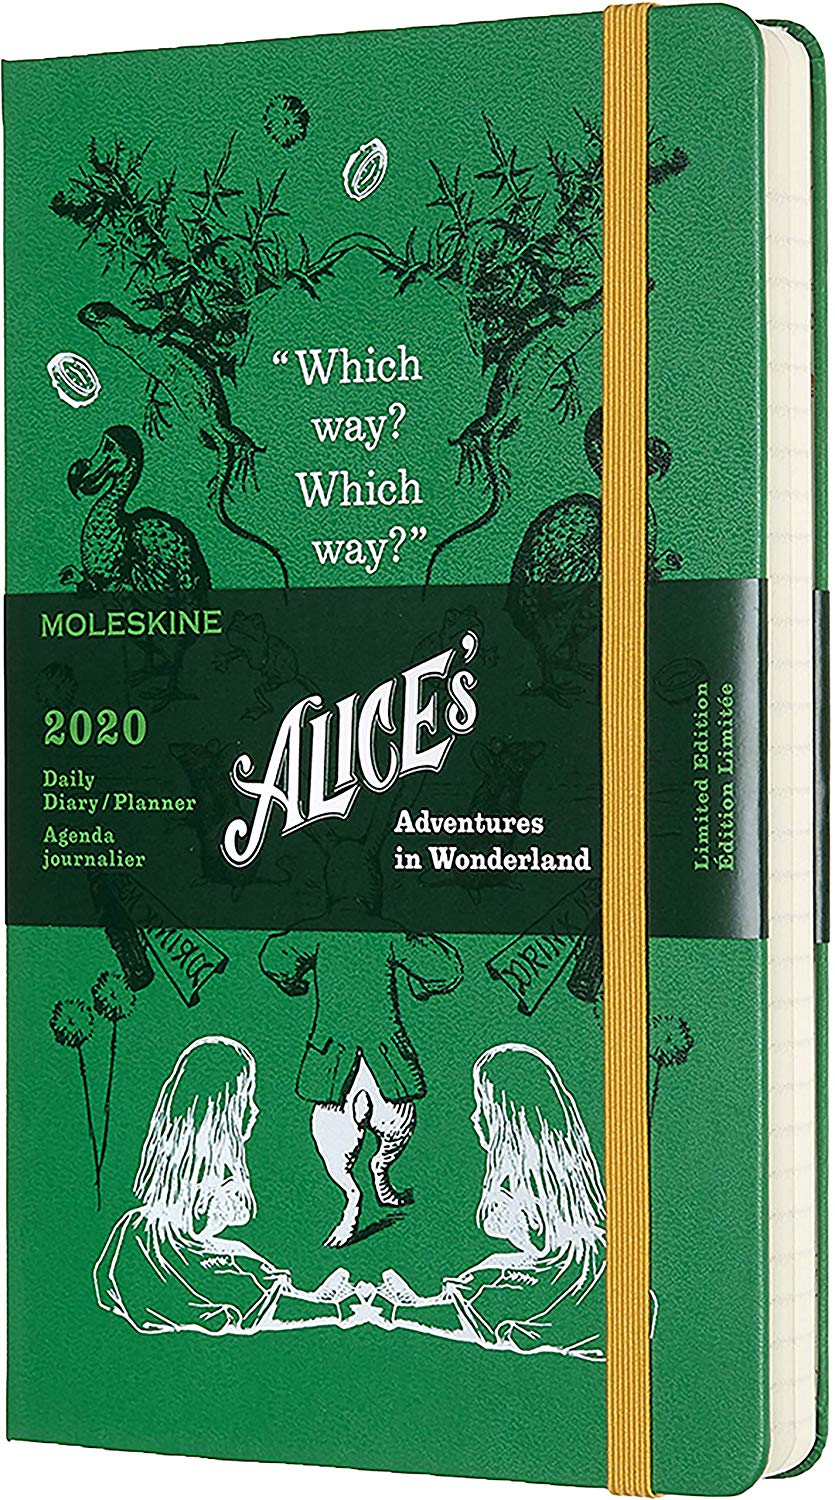 Agenda 2020 - Moleskine Limited Edition Alice's Adventures in Wonderland 12-Month Daily Notebook Planner - Green, Large, Hard cover thumbnail